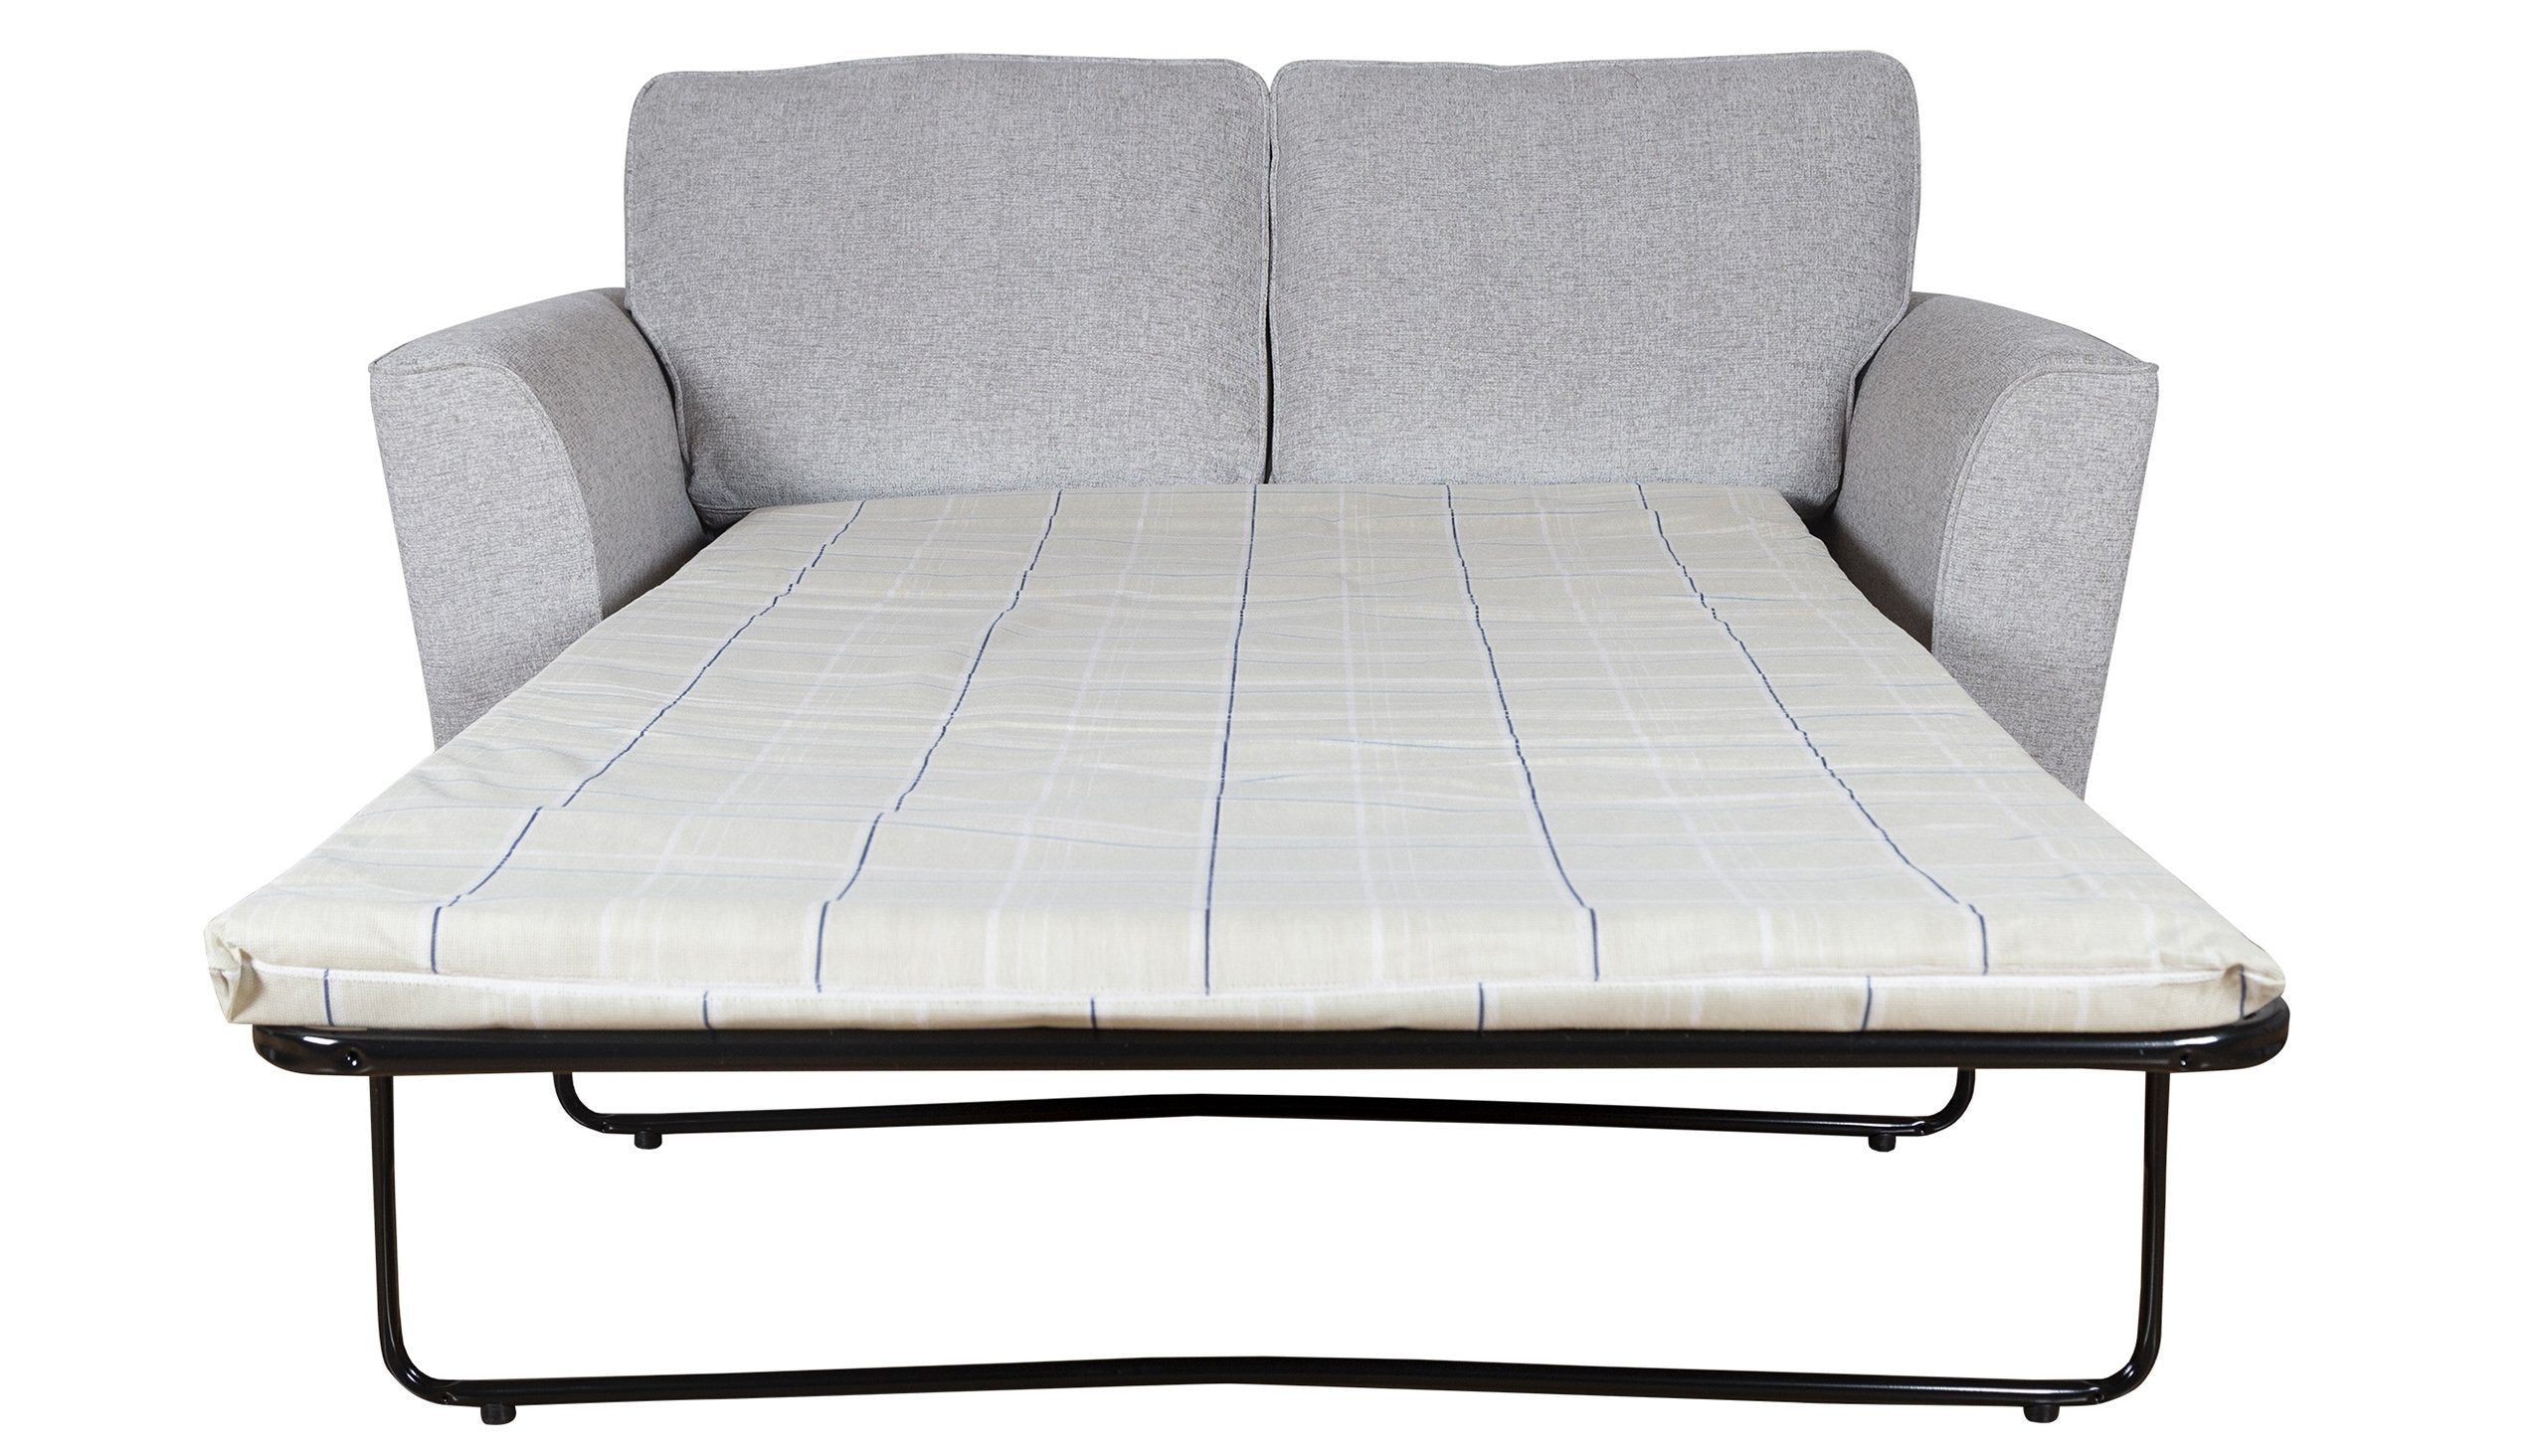 Hepburn 120cm Deluxe Sofa Bed - AHF Furniture & Carpets